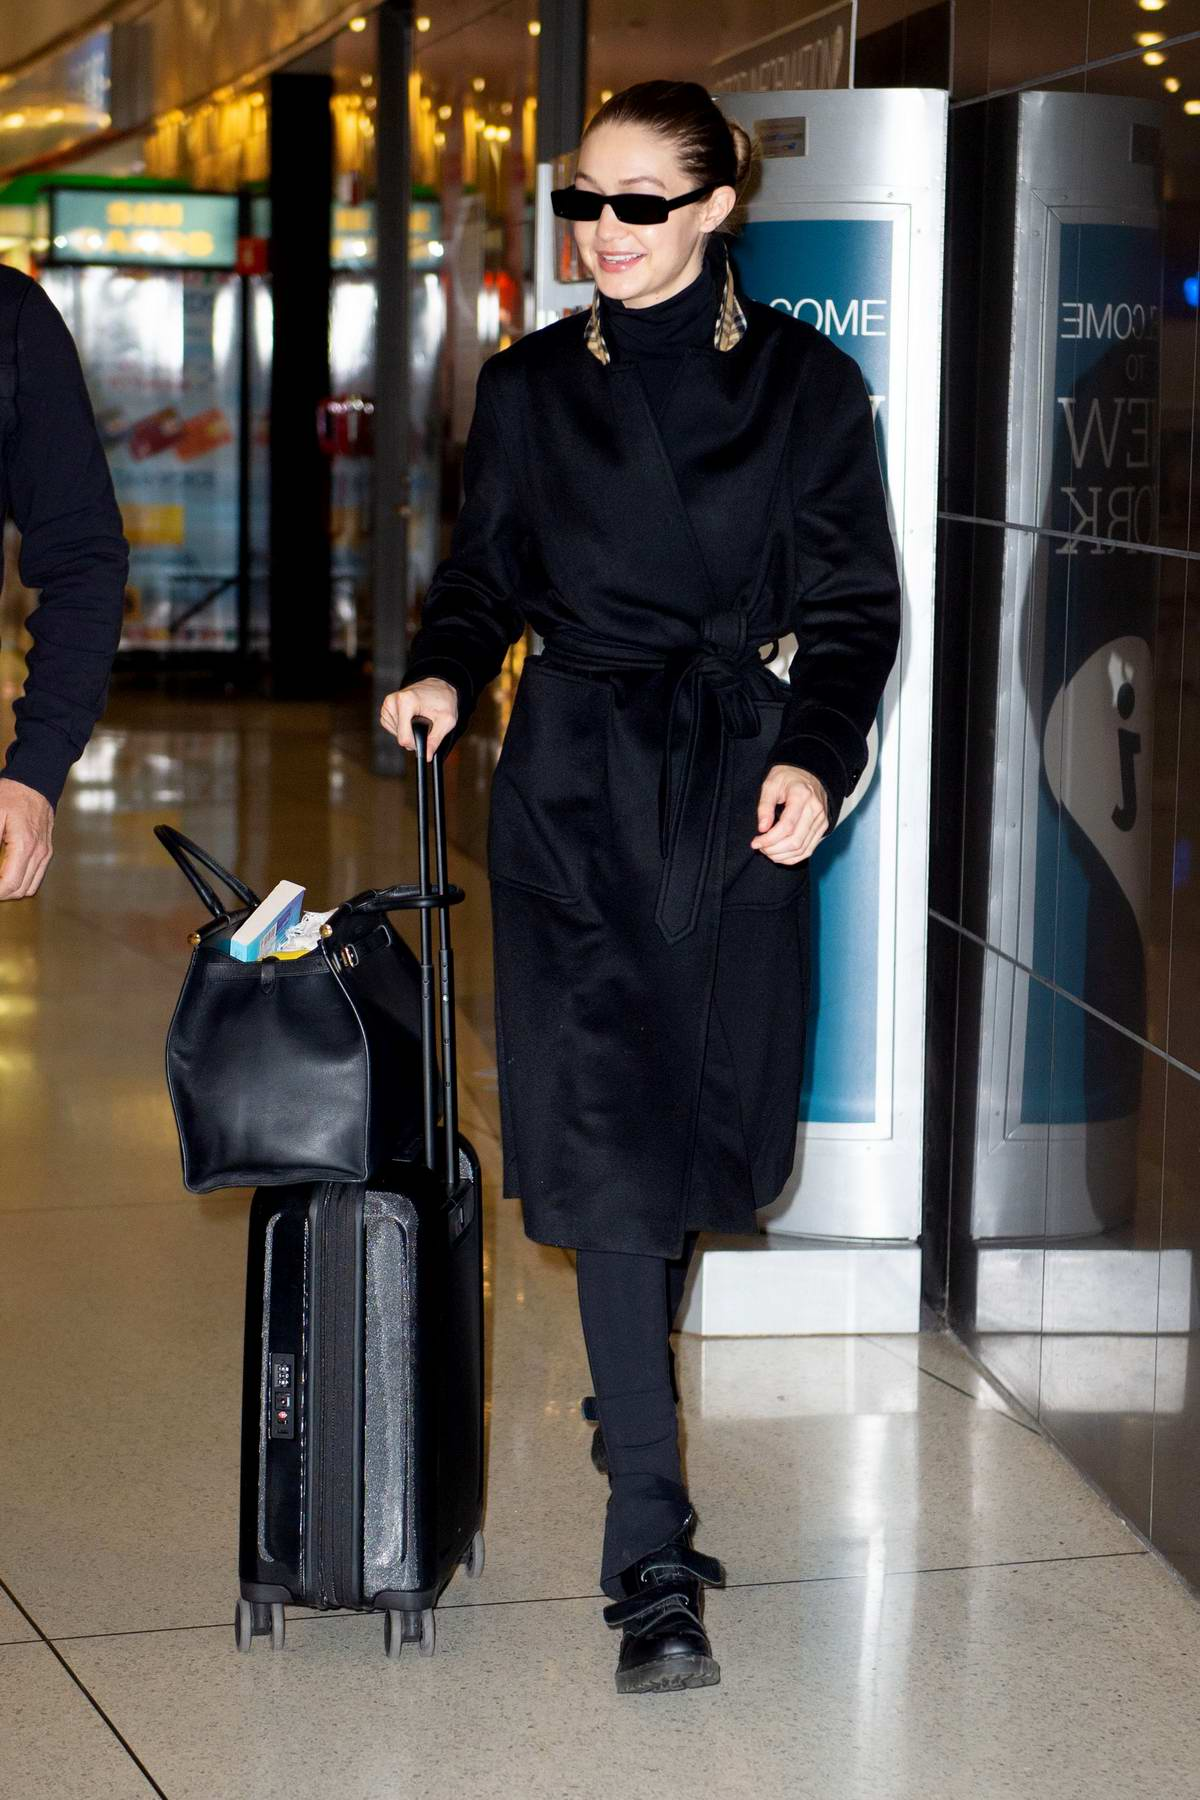 Gigi Hadid dons all black as she arrives at JFK airport in New York City